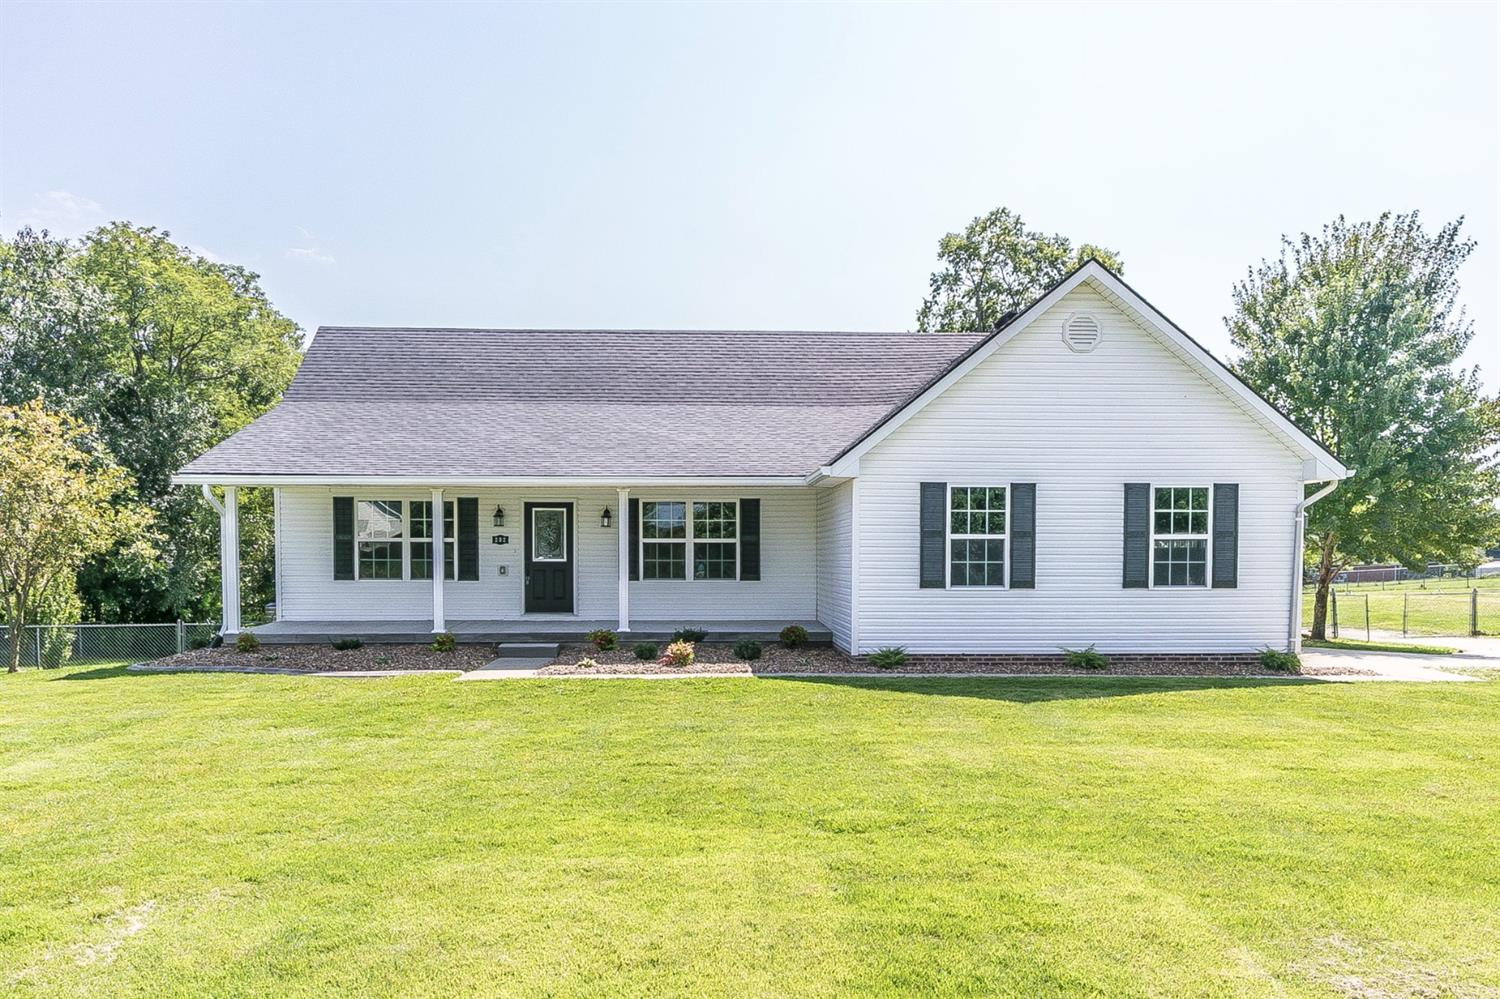 Home For Sale at 232 Elkmont Dr, Berea, KY 40403